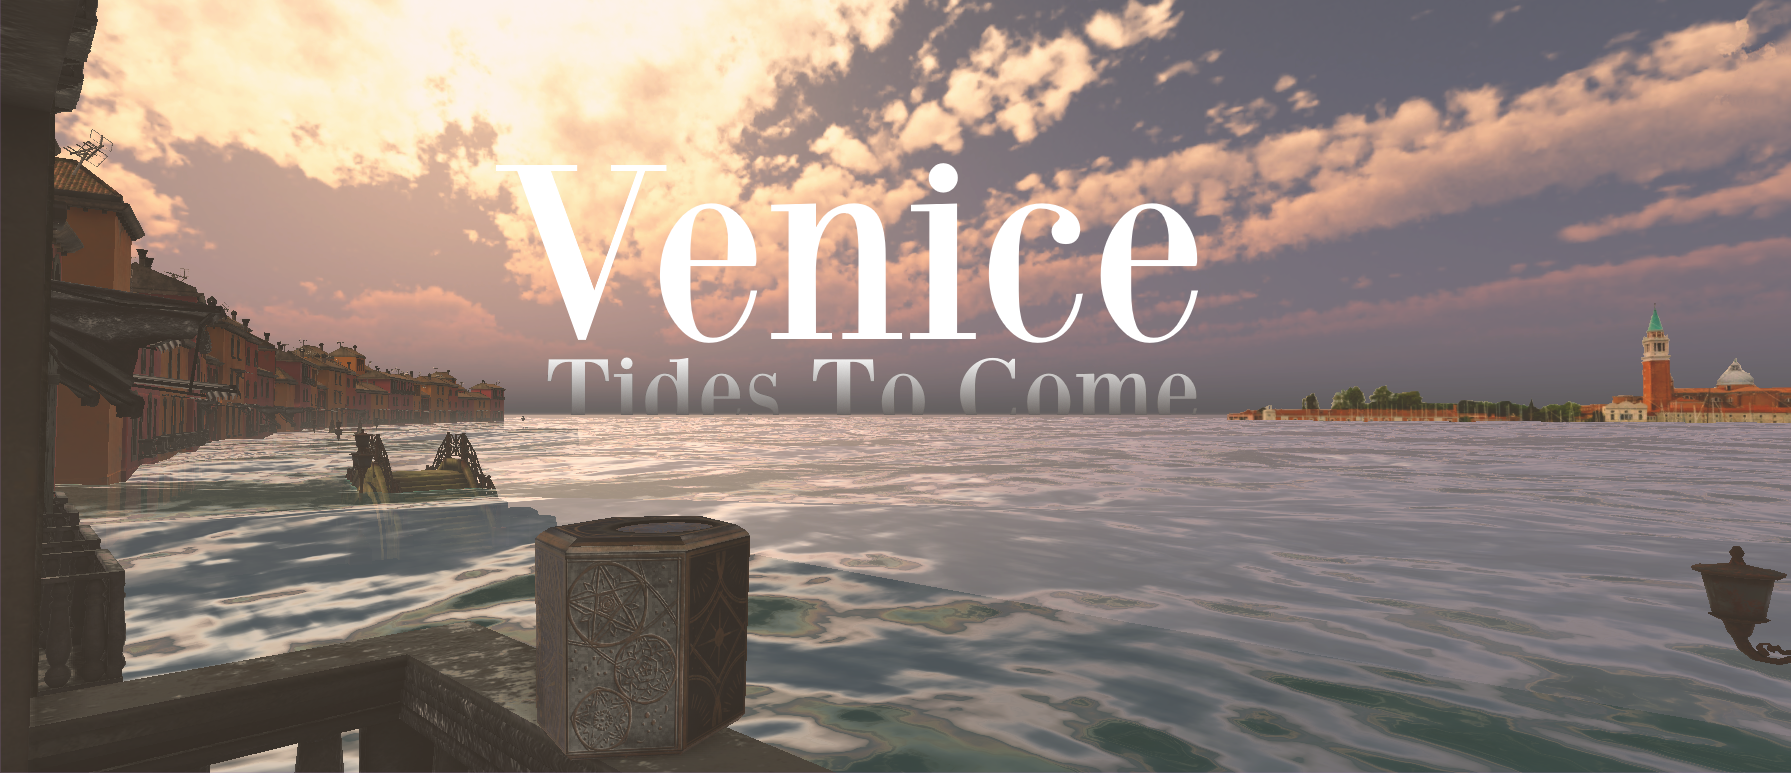 Venice: Tides To Come